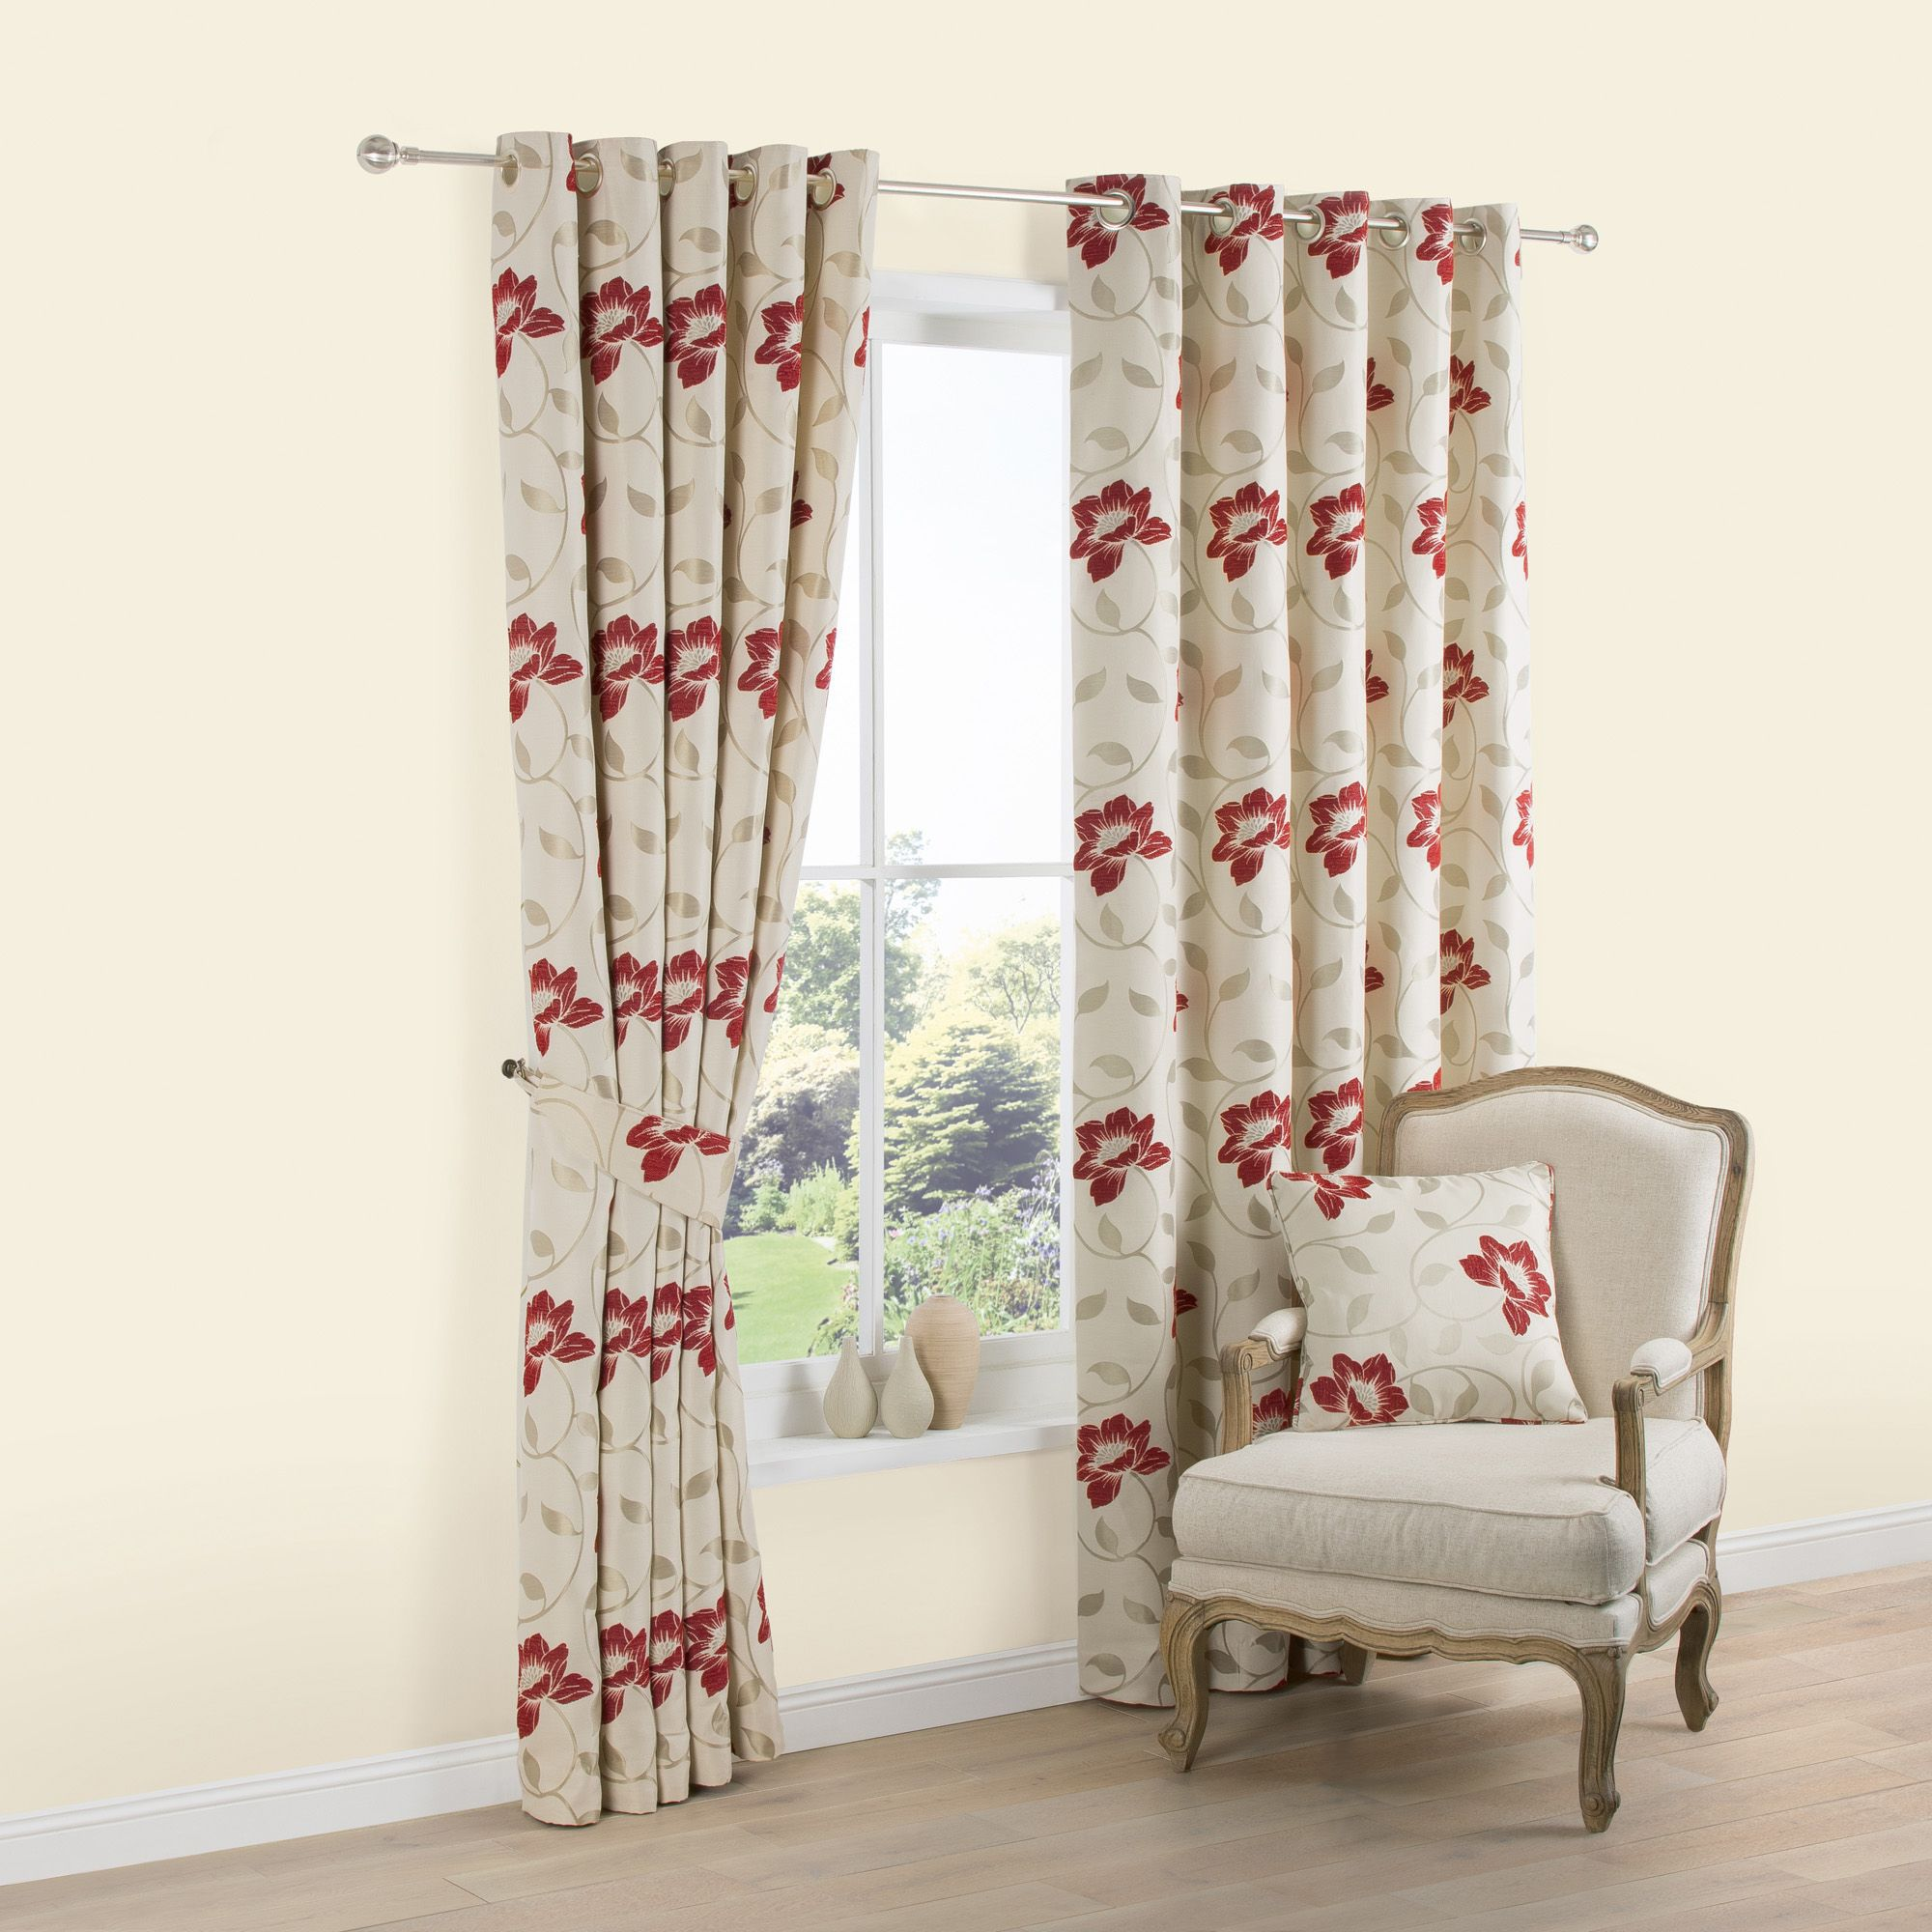 Geranium Cream U0026 Red Floral Jacquard Woven Eyelet Lined Curtains (W)167 Cm  (L)228 Cm | Departments | DIY At Bu0026Q